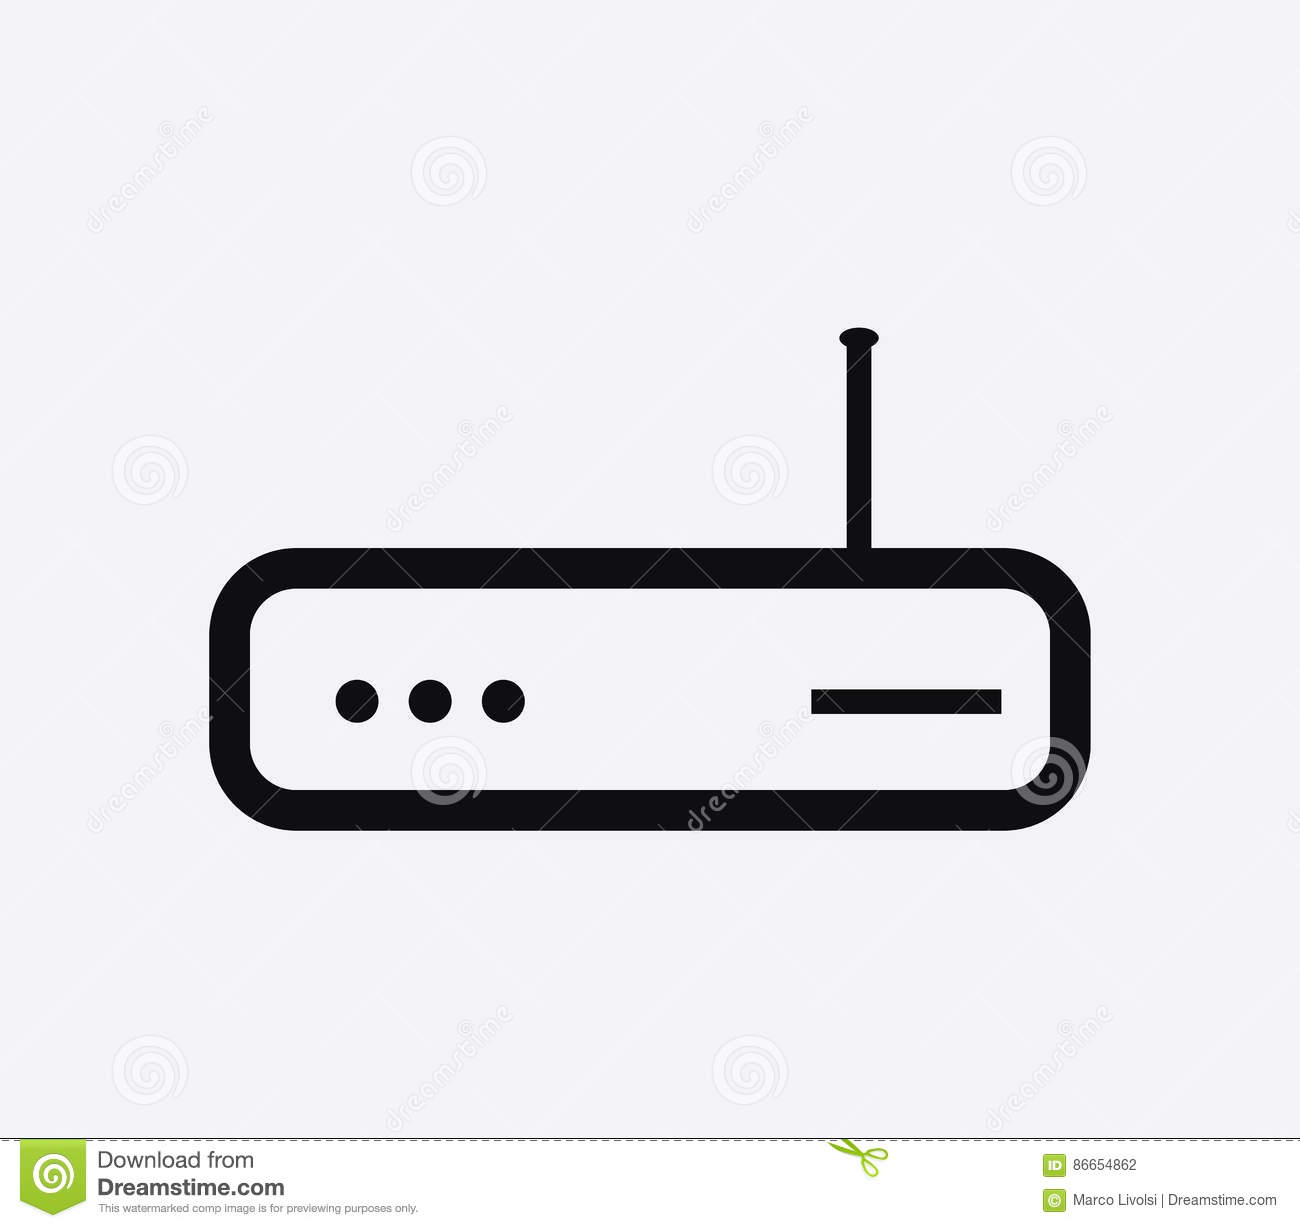 Icon Wifi Router Illustrated Stock Illustration - Illustration of ...